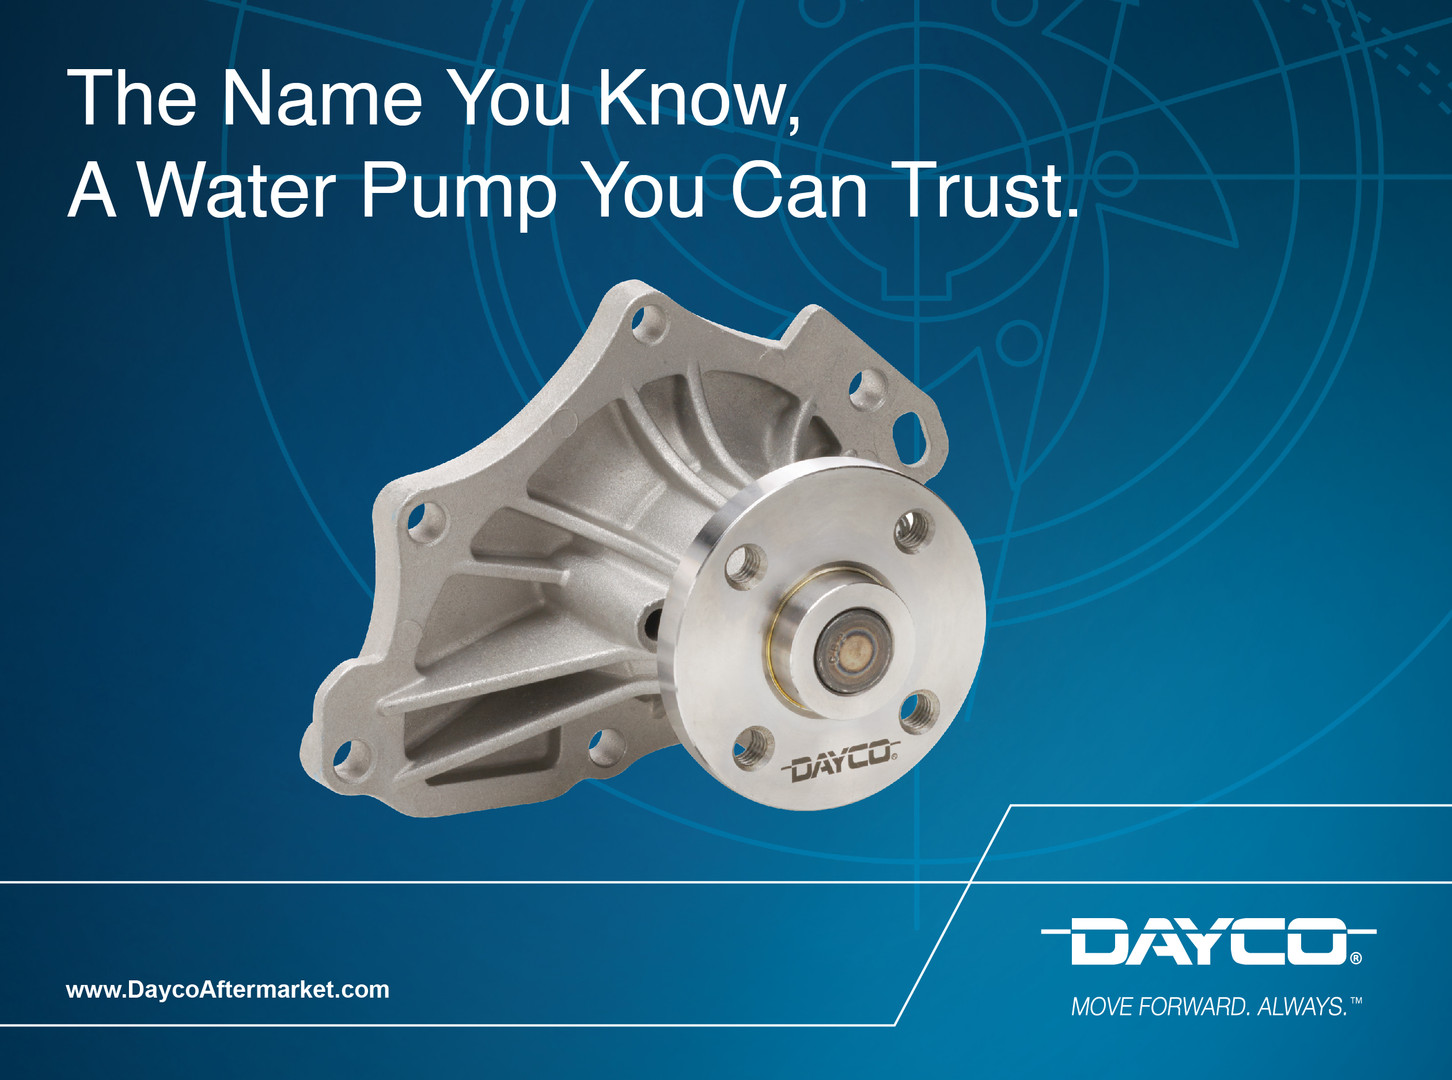 Water Pumps Digital Ad